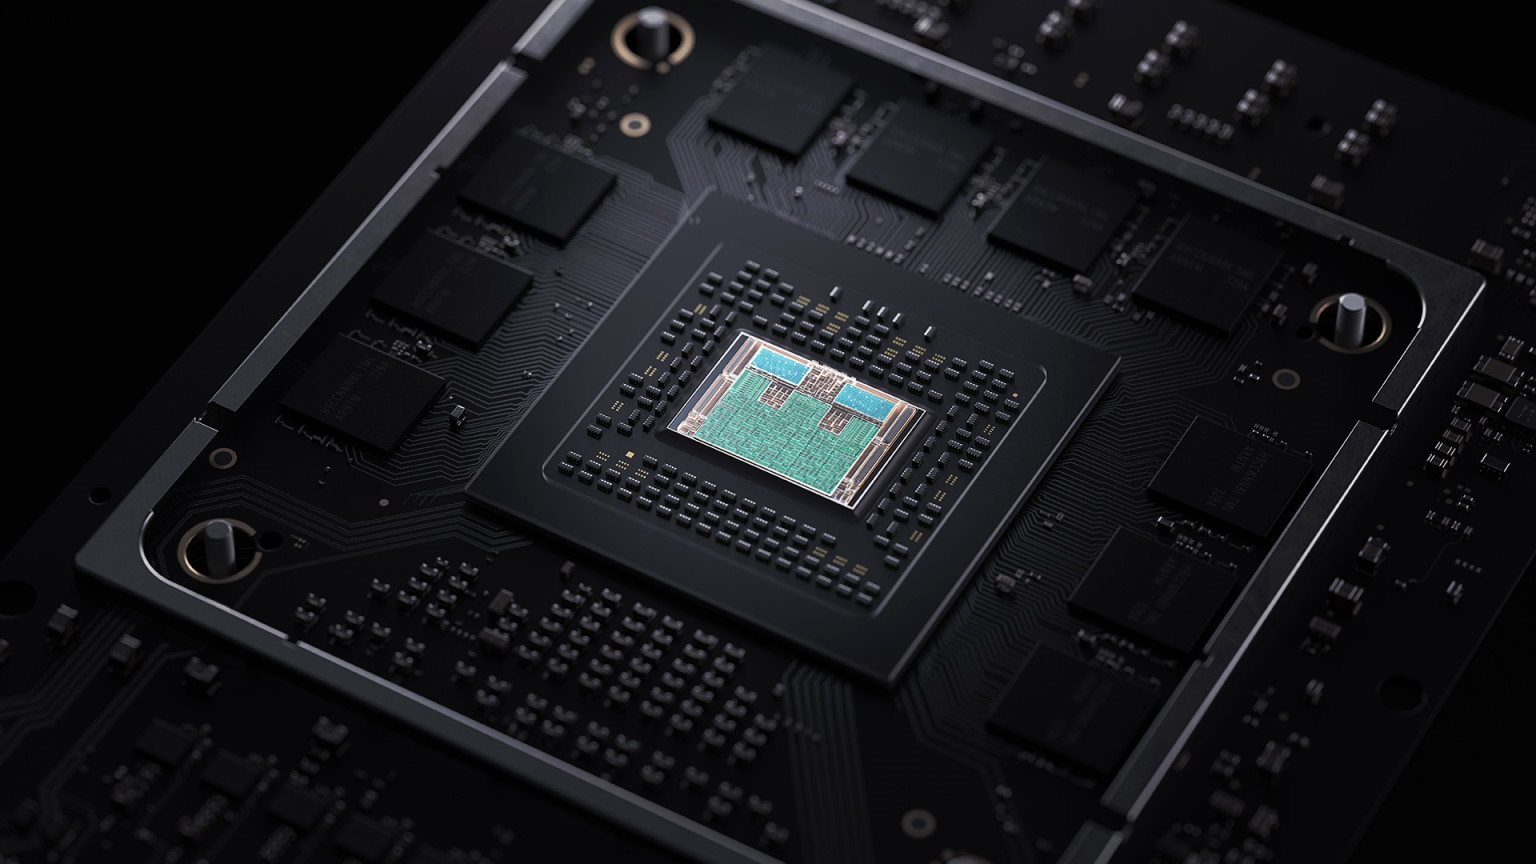 This might be the biggest difference between the PS5 and Xbox Series X